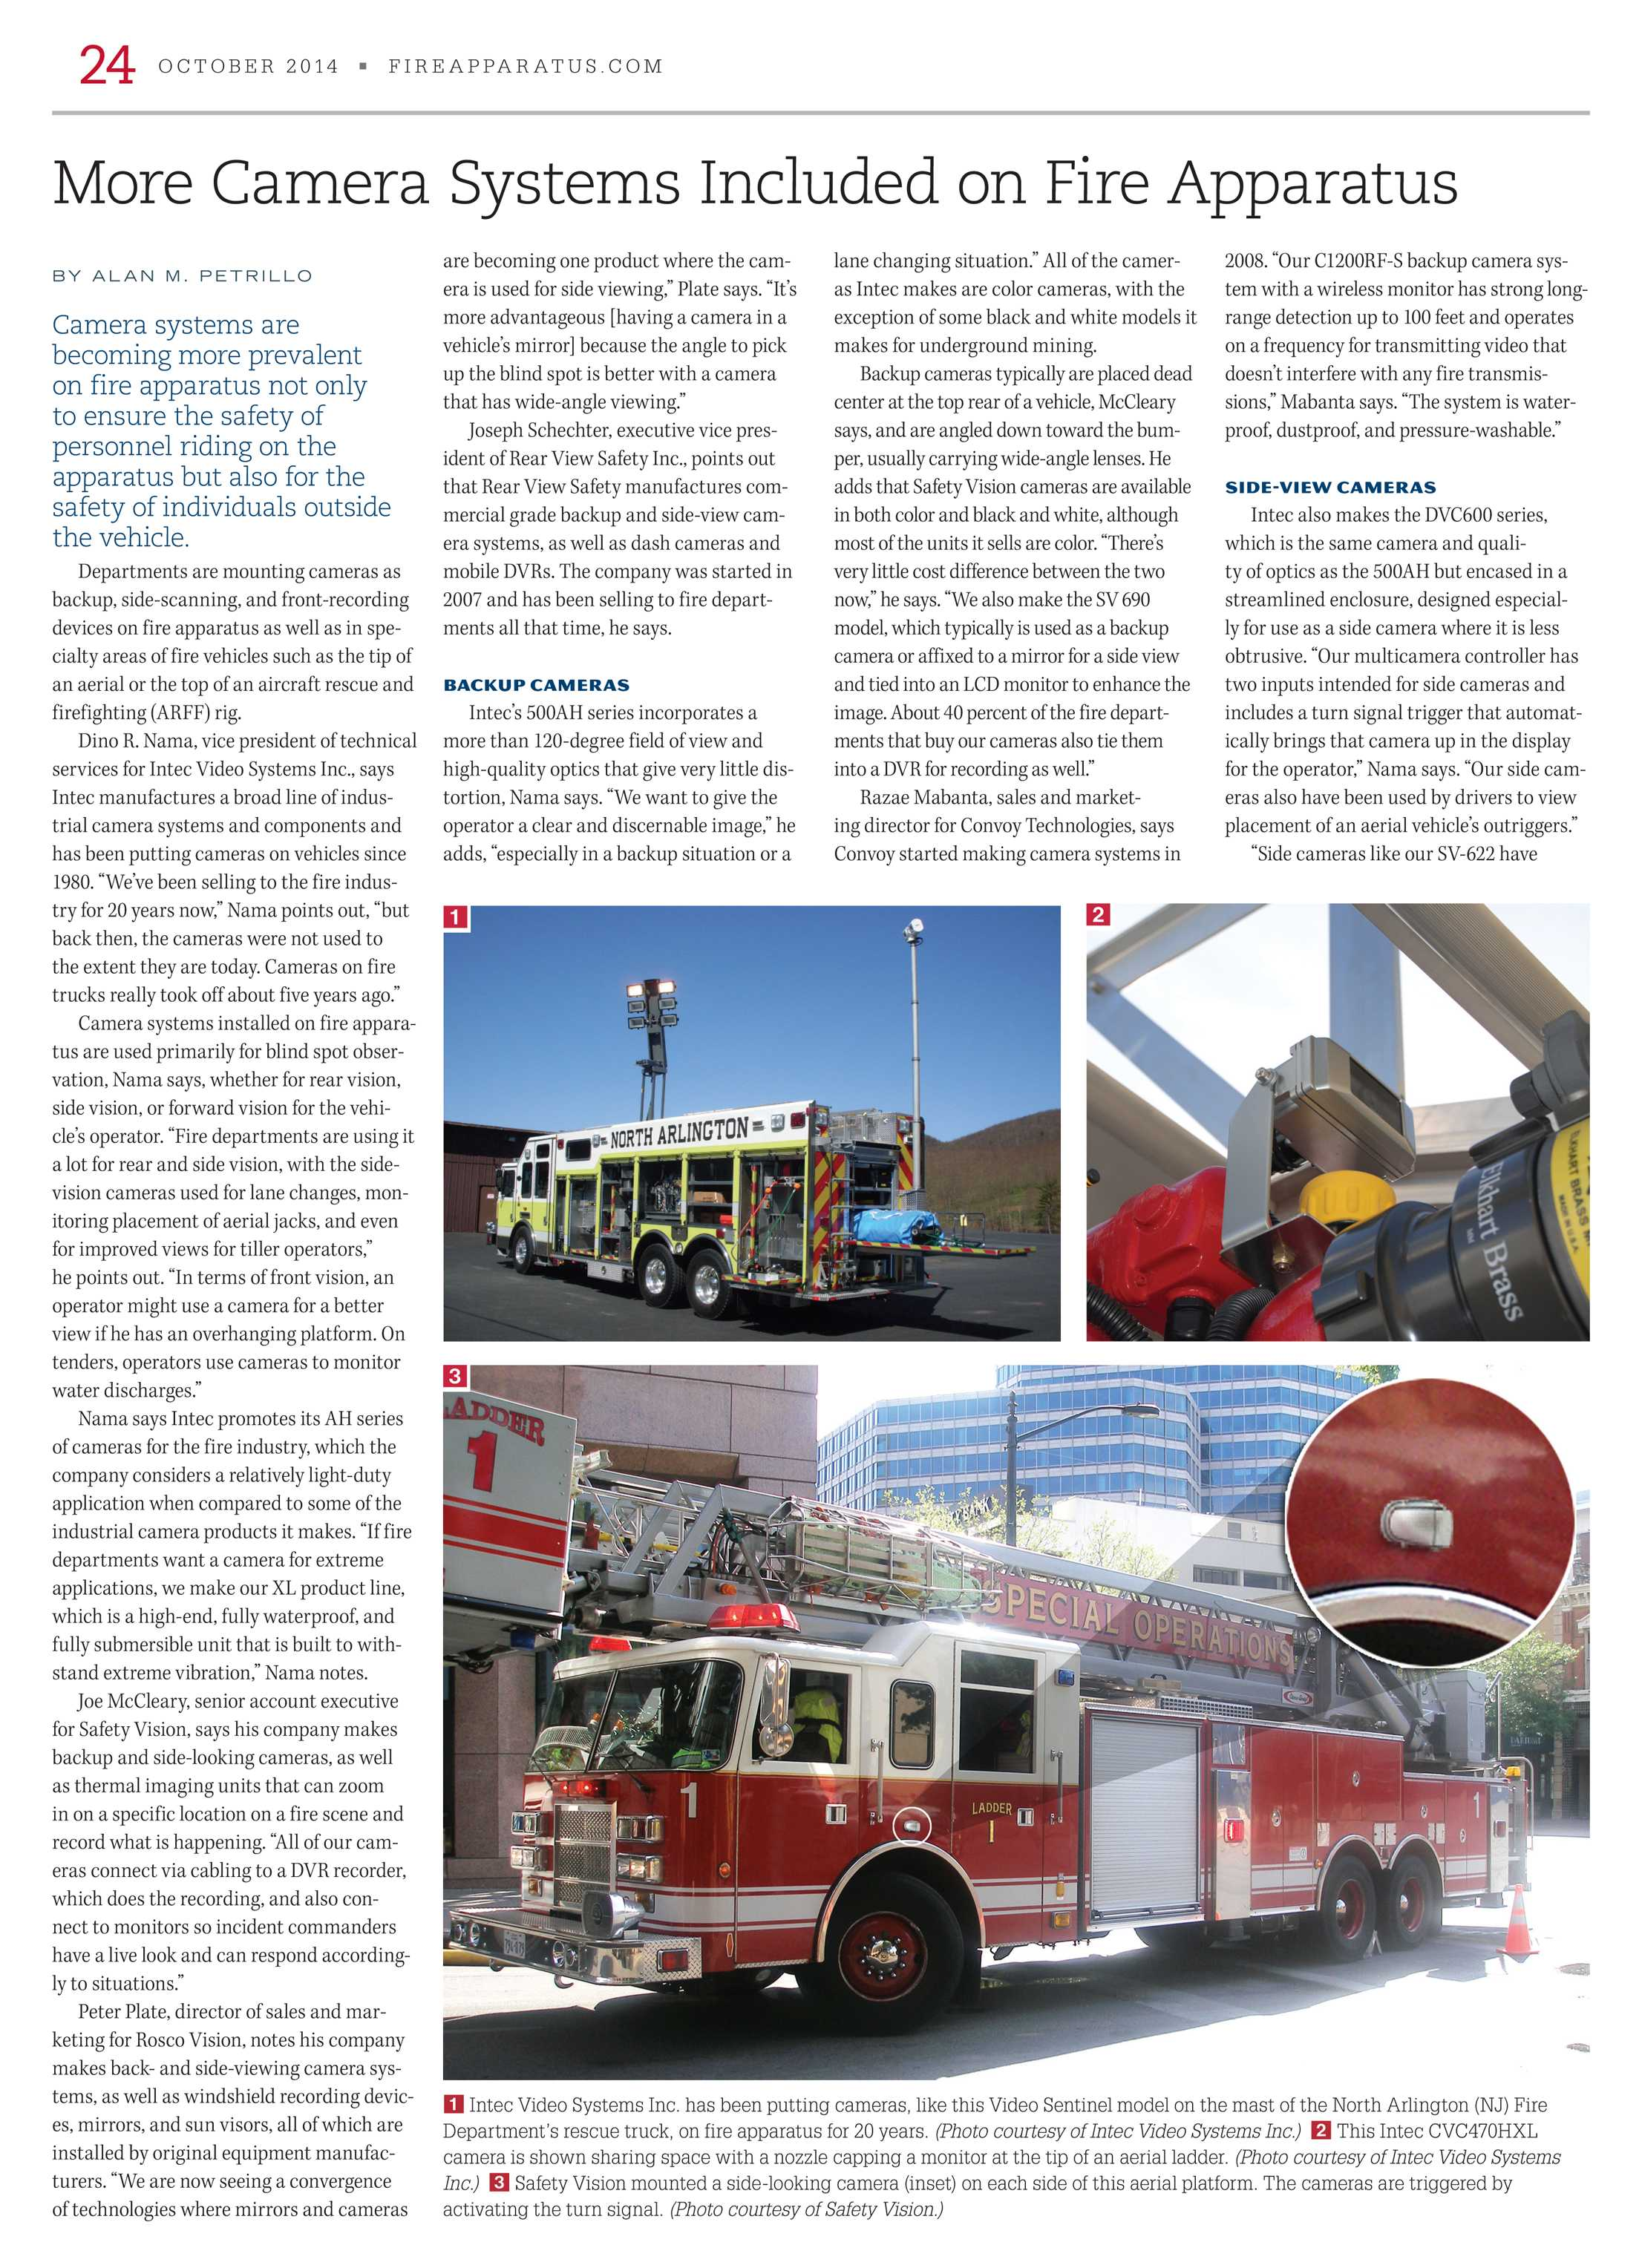 Fire Apparatus Magazine - October 2014 - page 24